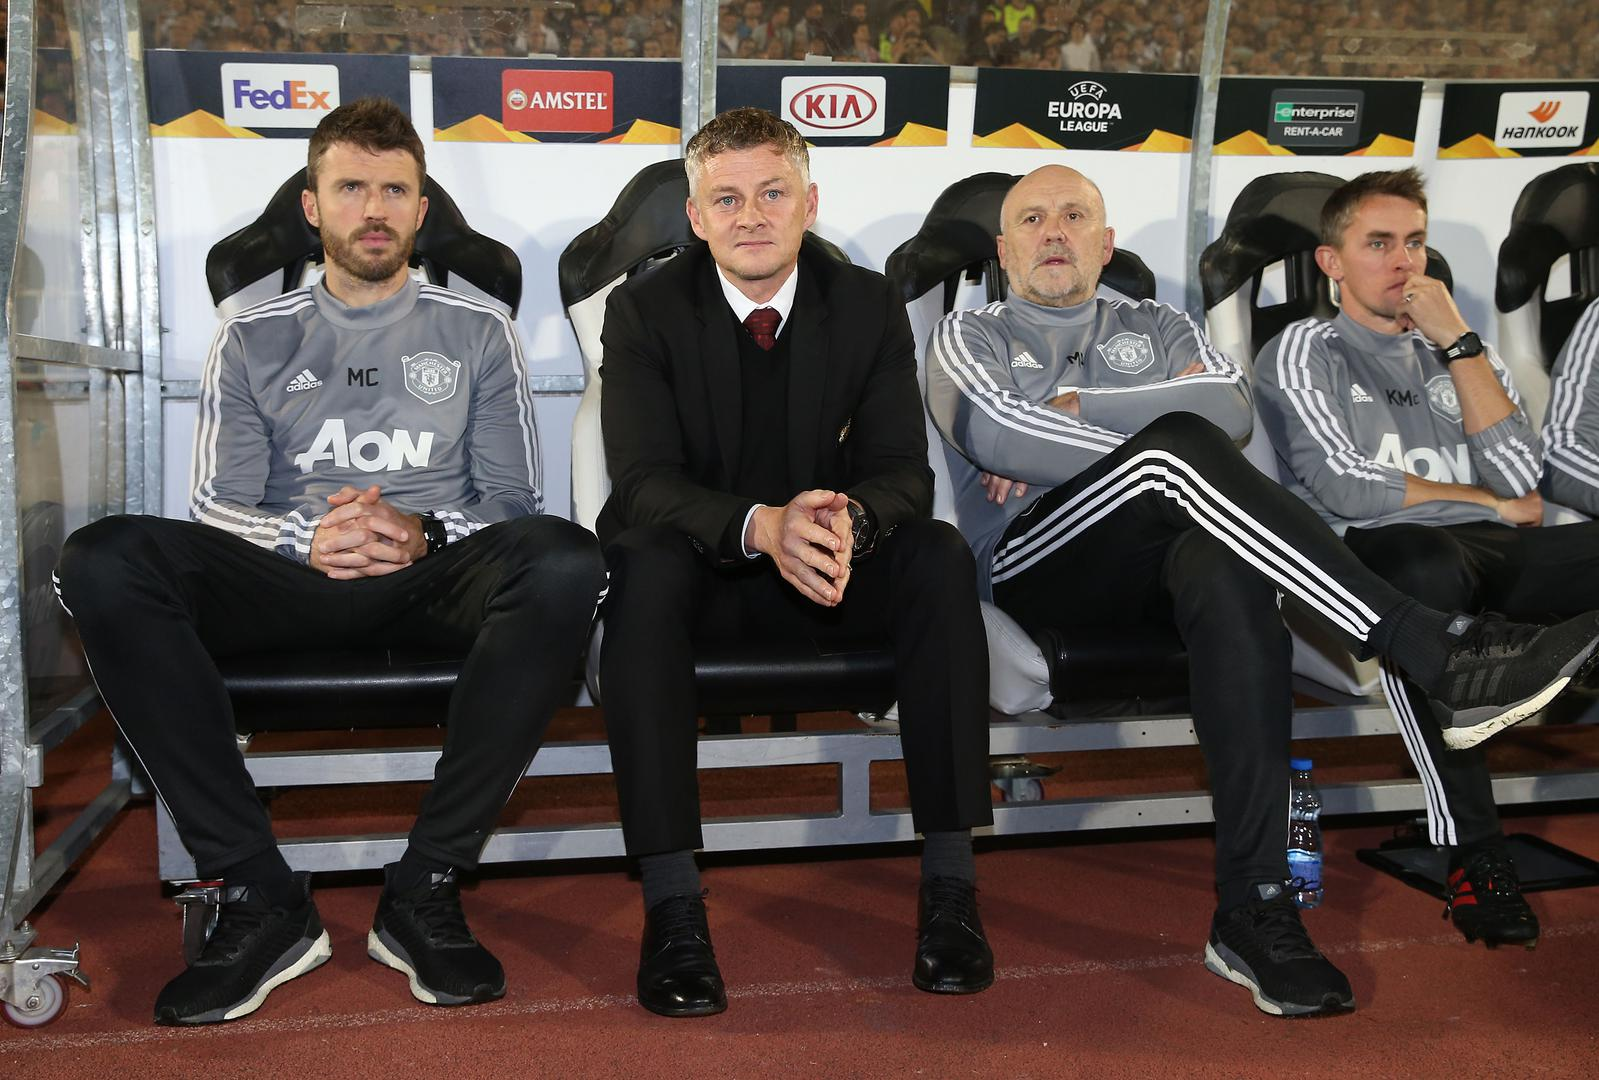 Ole Gunnar Solskjaer and his assistants in Belgrade.